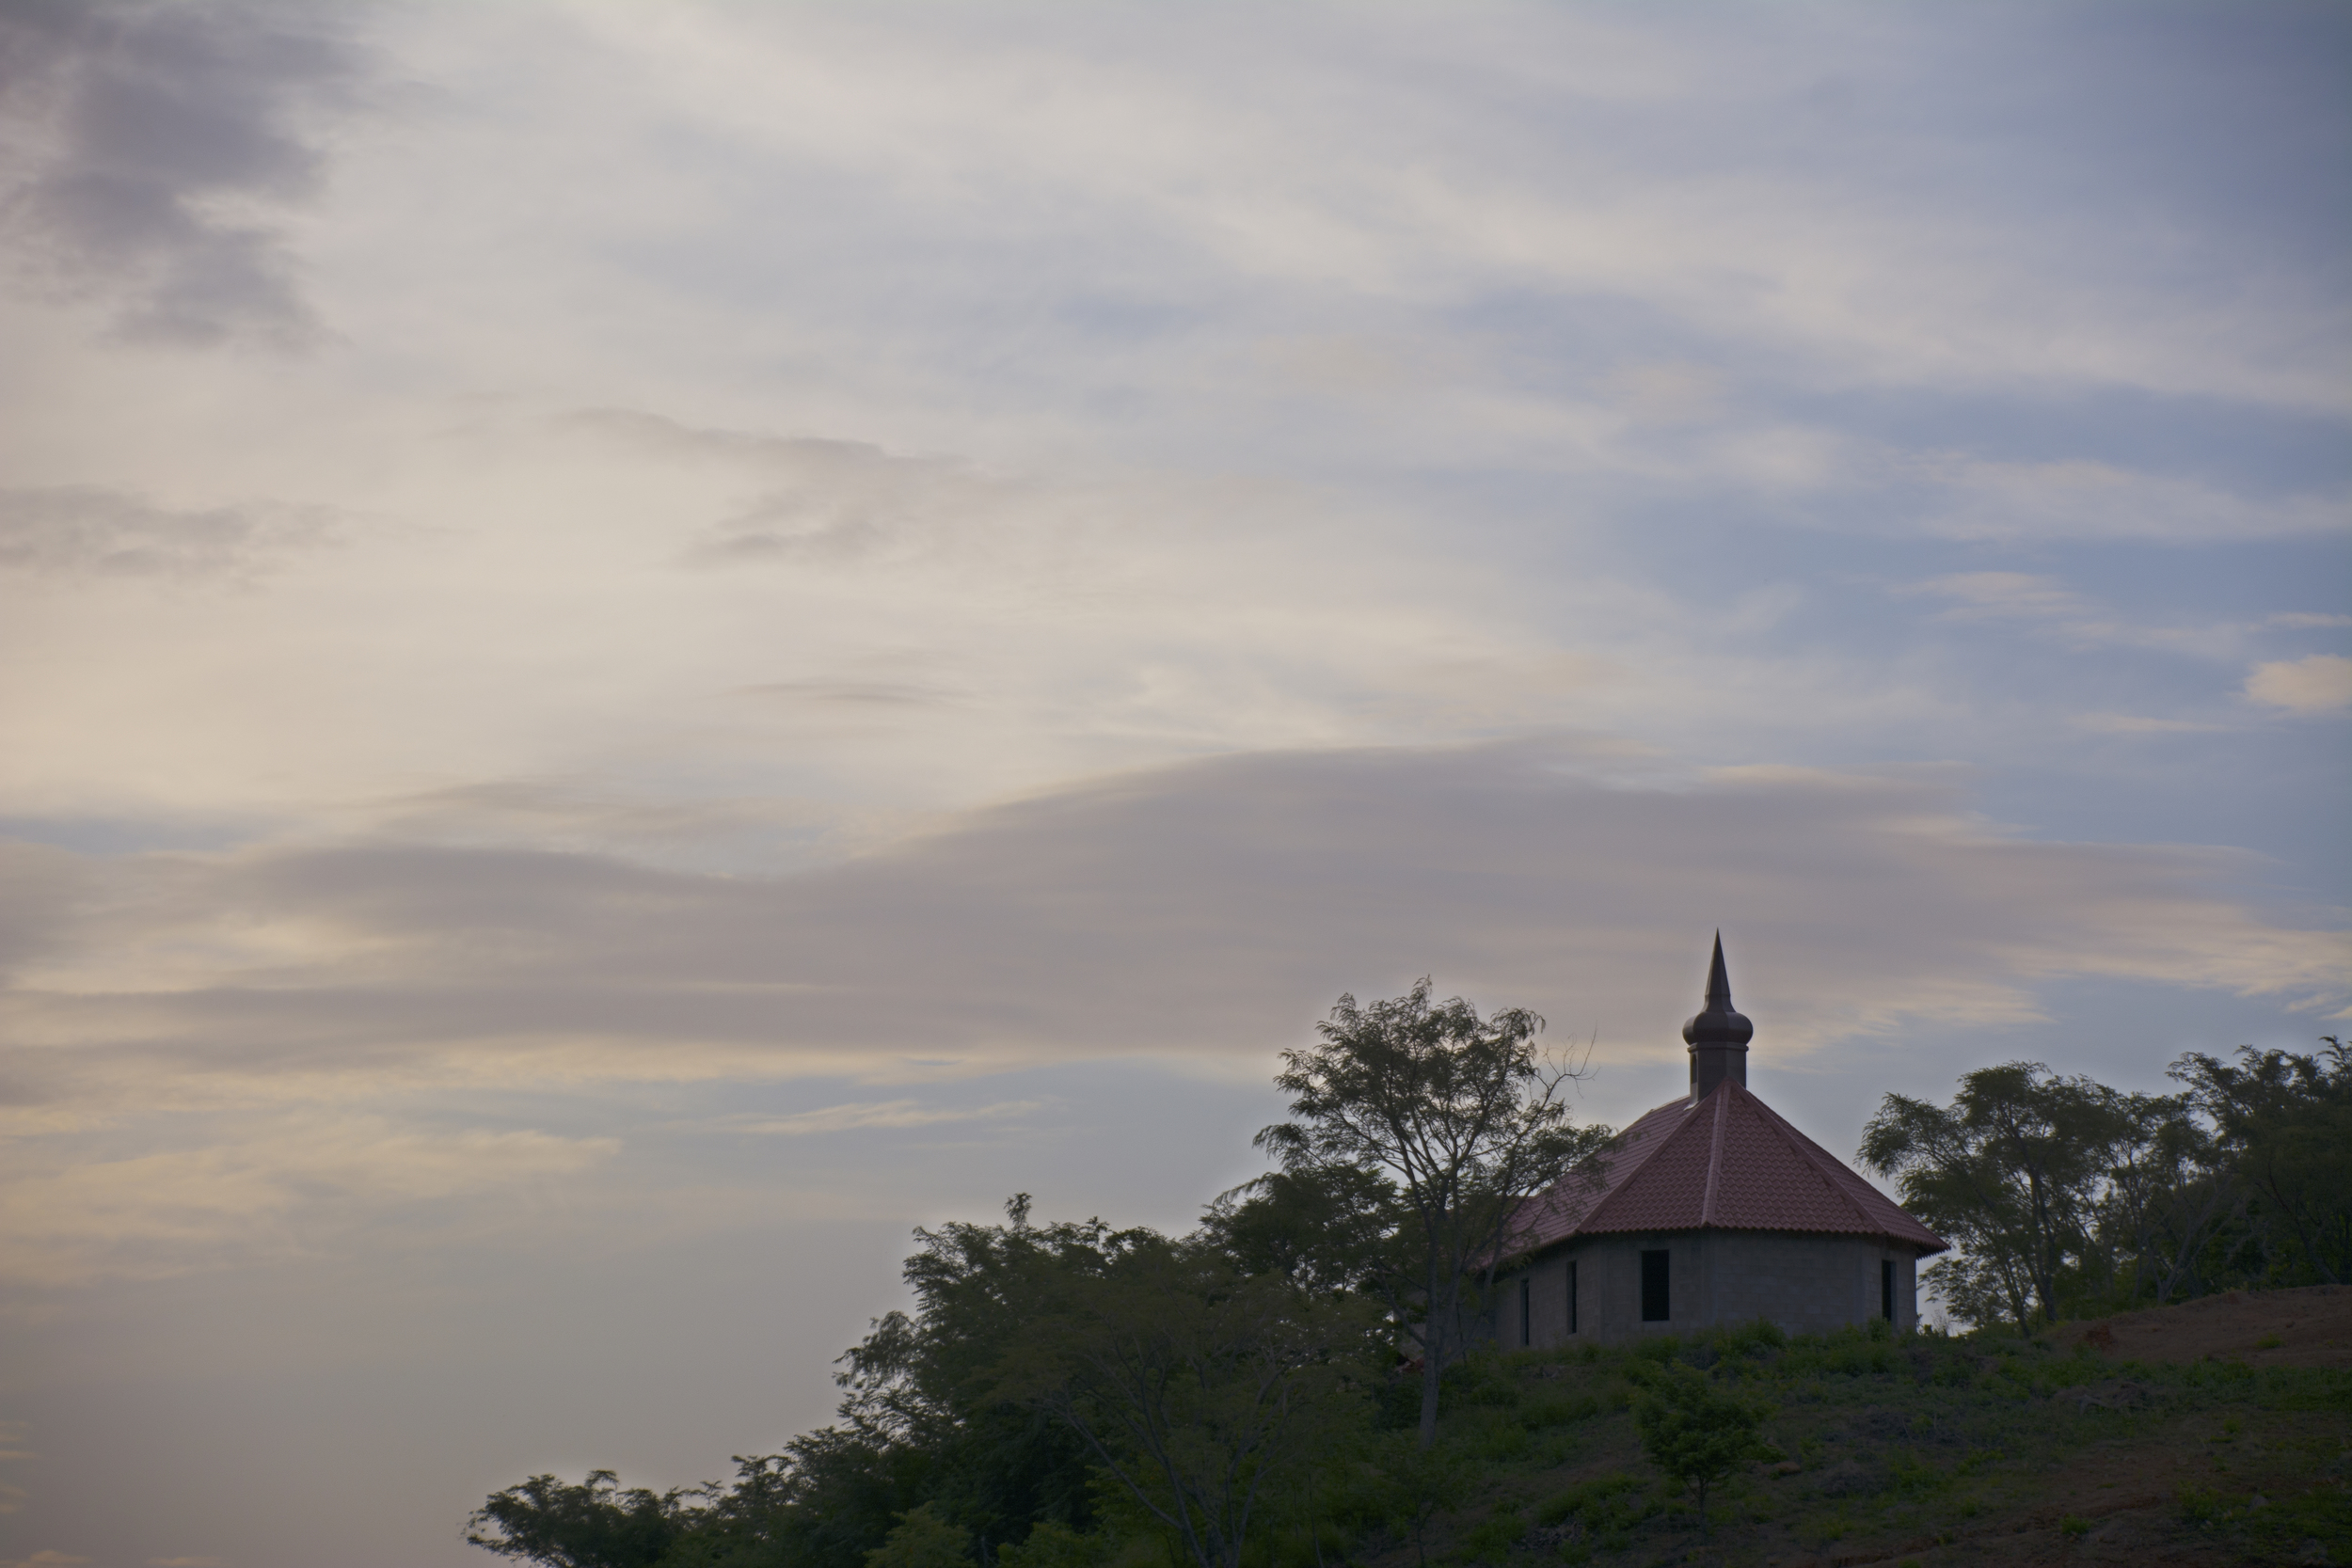 Little church (El Mozote, El Salvador; Jul 2015)